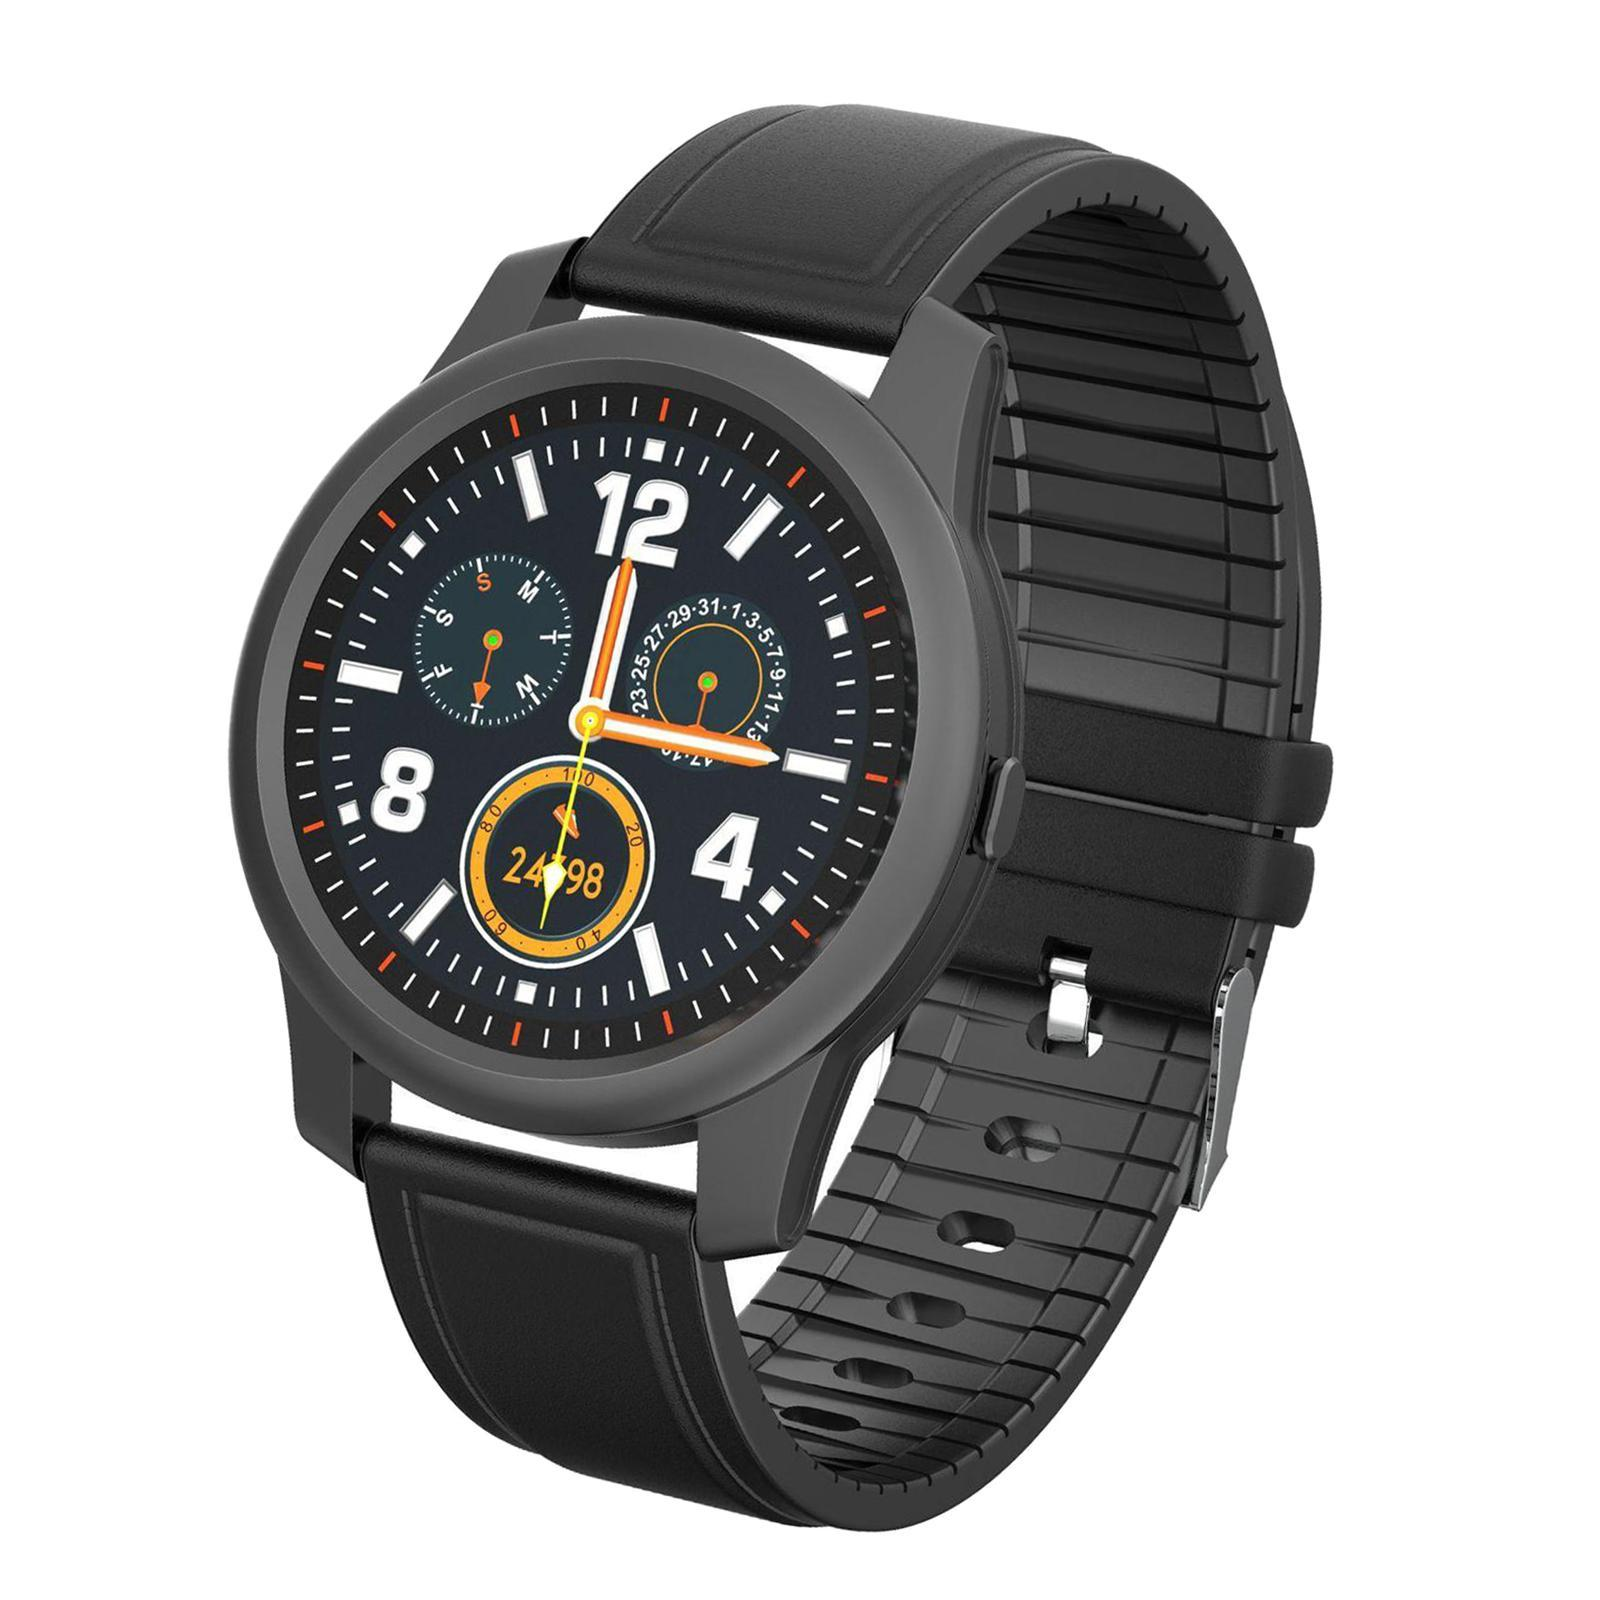 Indexbild 6 - 1,28 Zoll F12 Bluetooth 5.0 Fitness Tracker Smart Watch